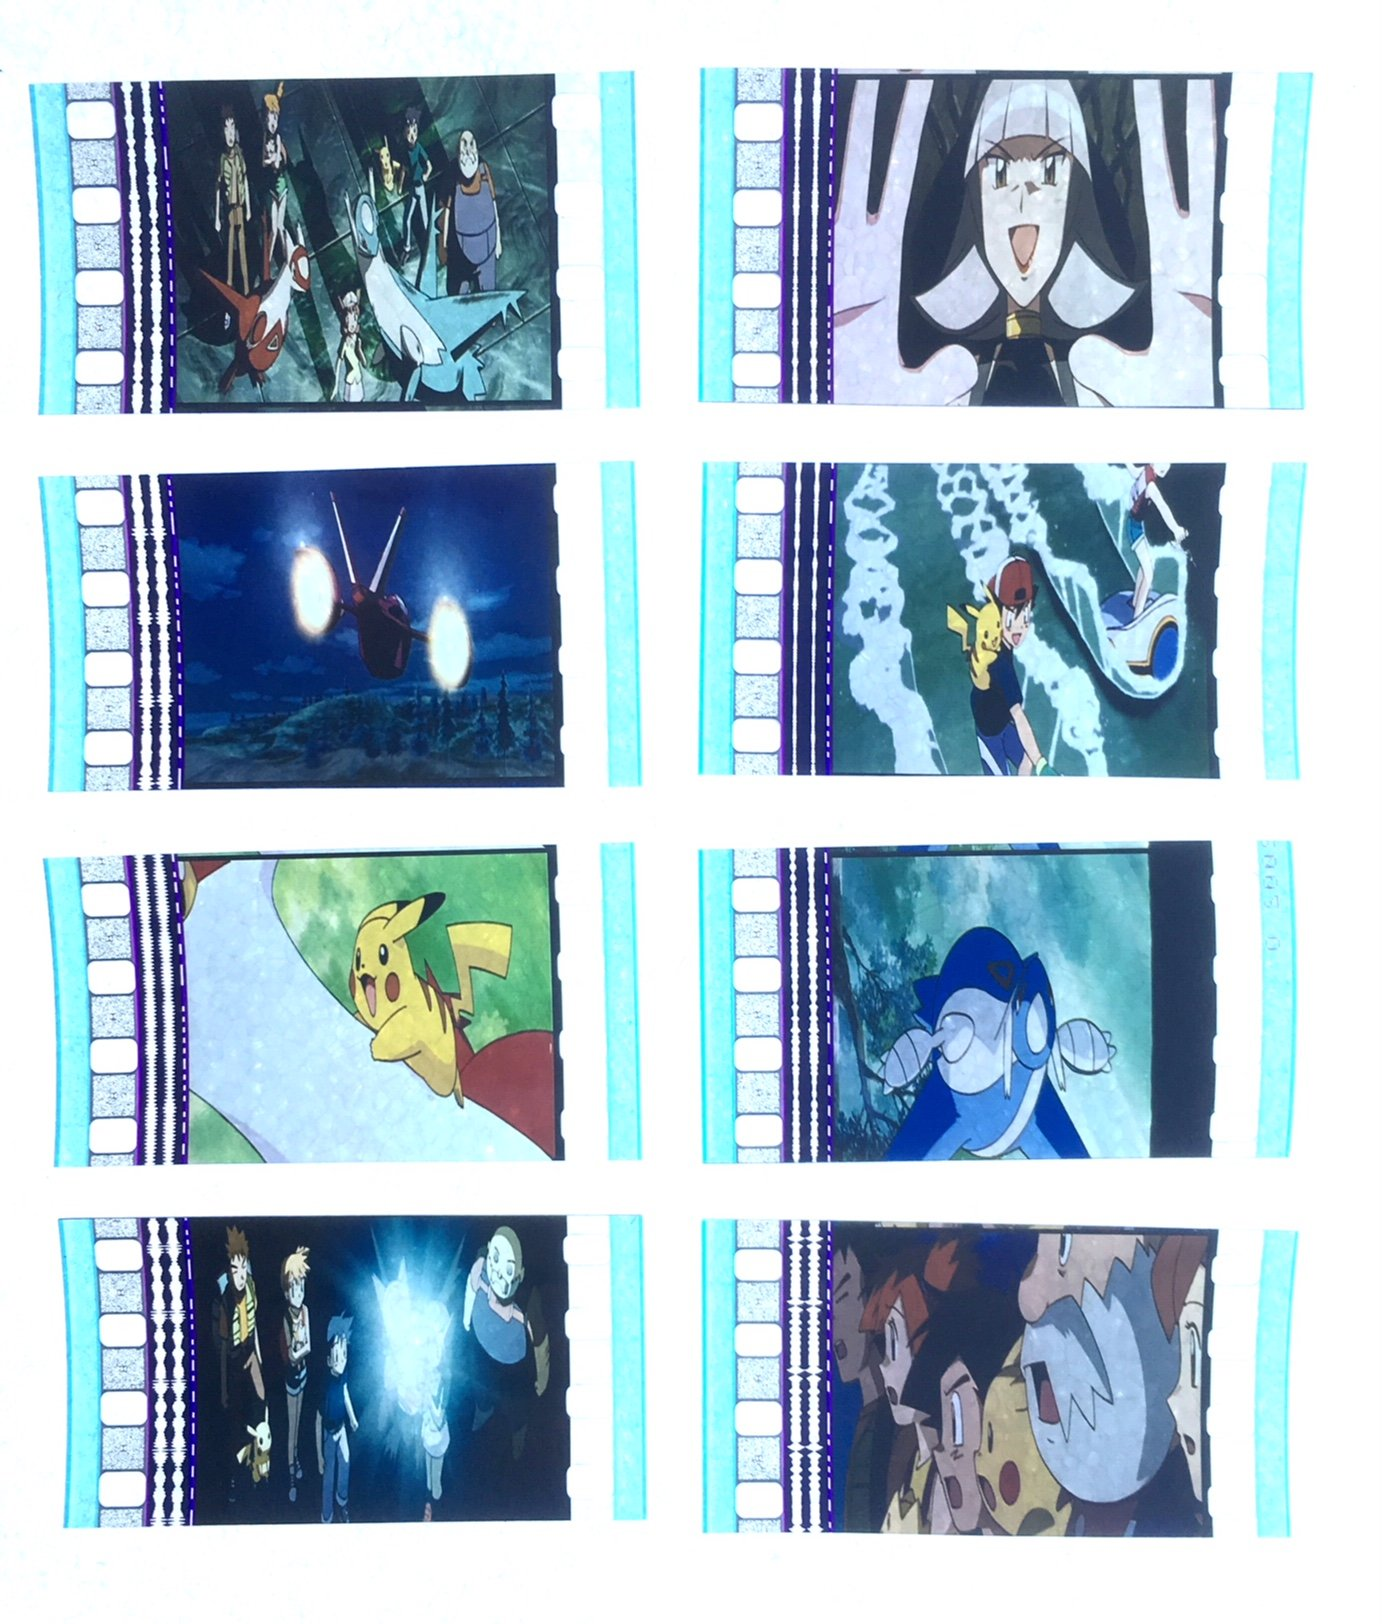 Pokemon 5 Pokemon Heroes Latios and Latias (2002) 35mm Movie Film Cell  Pack: Amazon.co.uk: Kitchen & Home